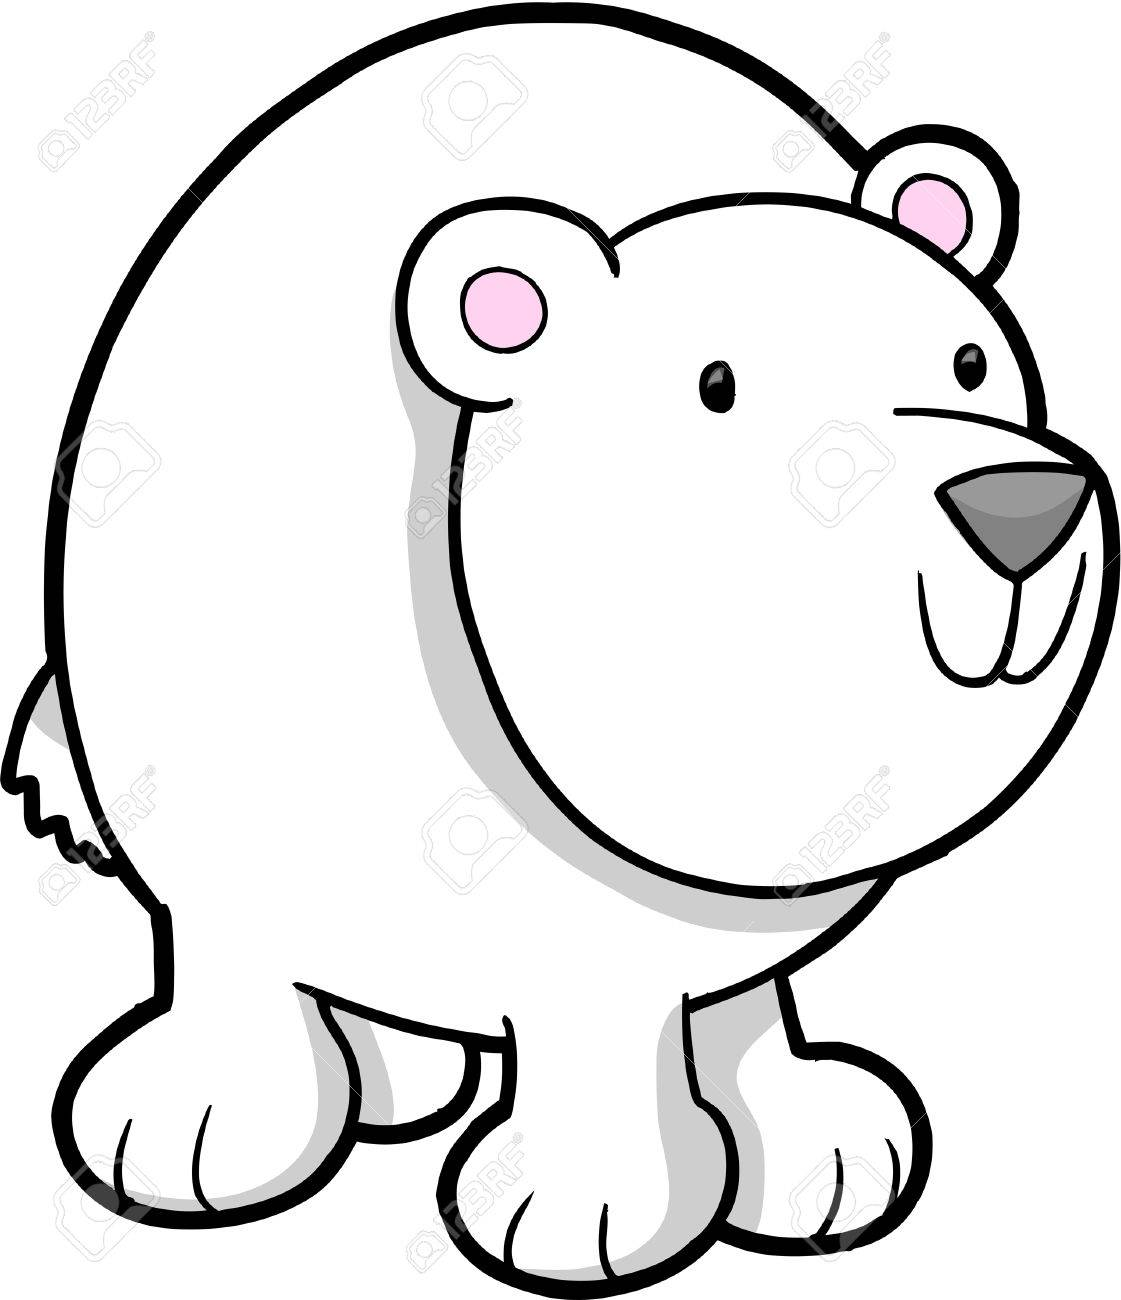 Images For > Oso Polar Para Colorear